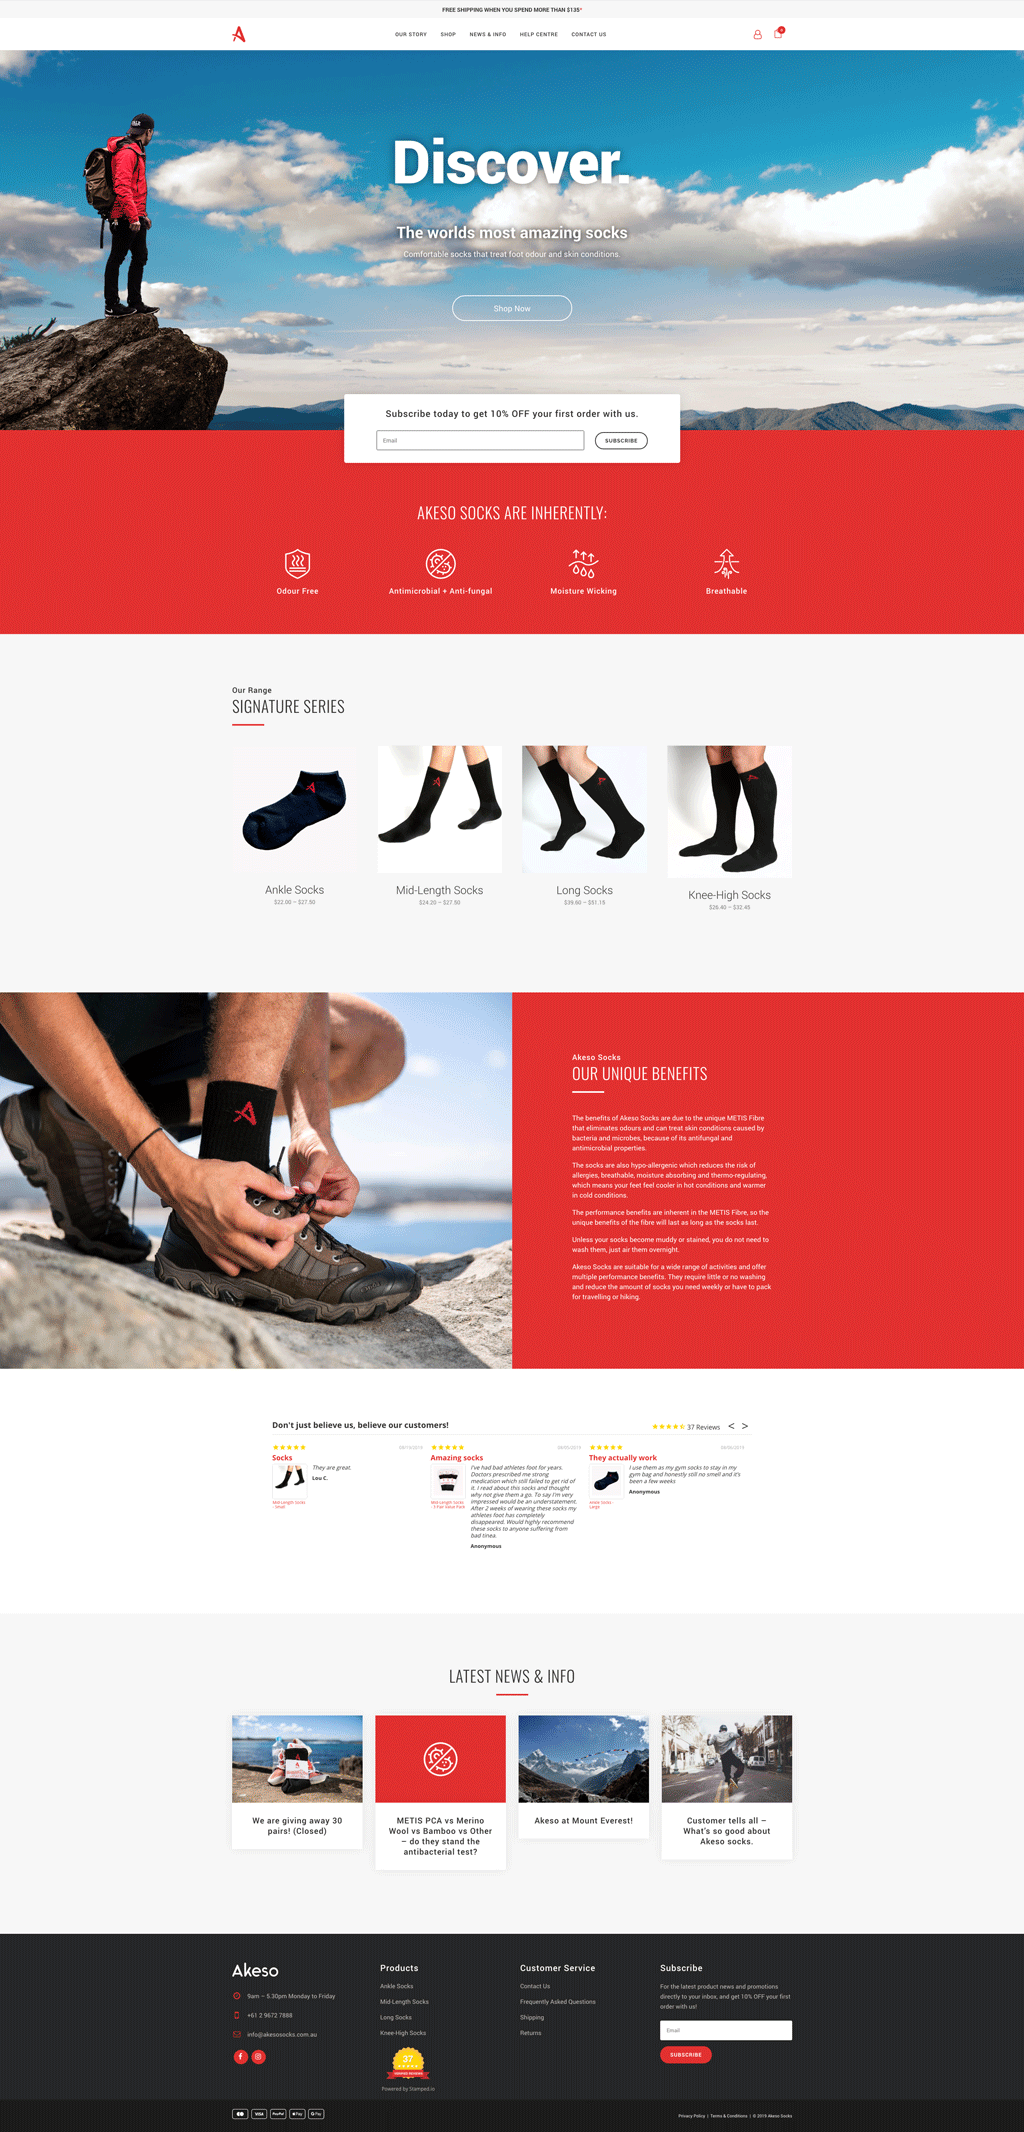 Akeso Socks Website Design